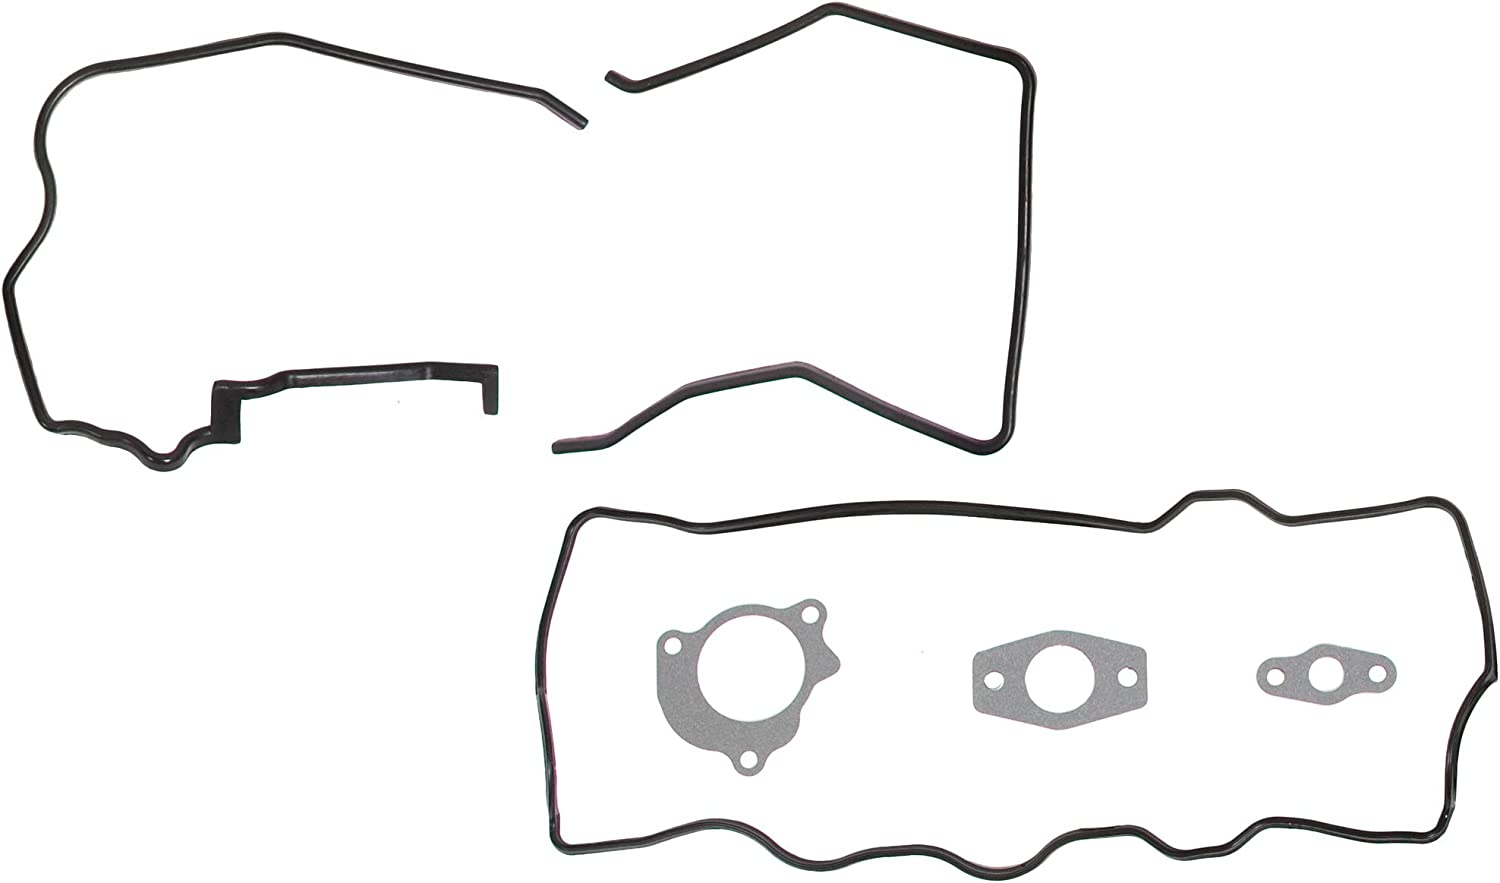 Head Gasket Set Timing Belt Kit Water Pump for 97-01 Toyota Camry 5SFE